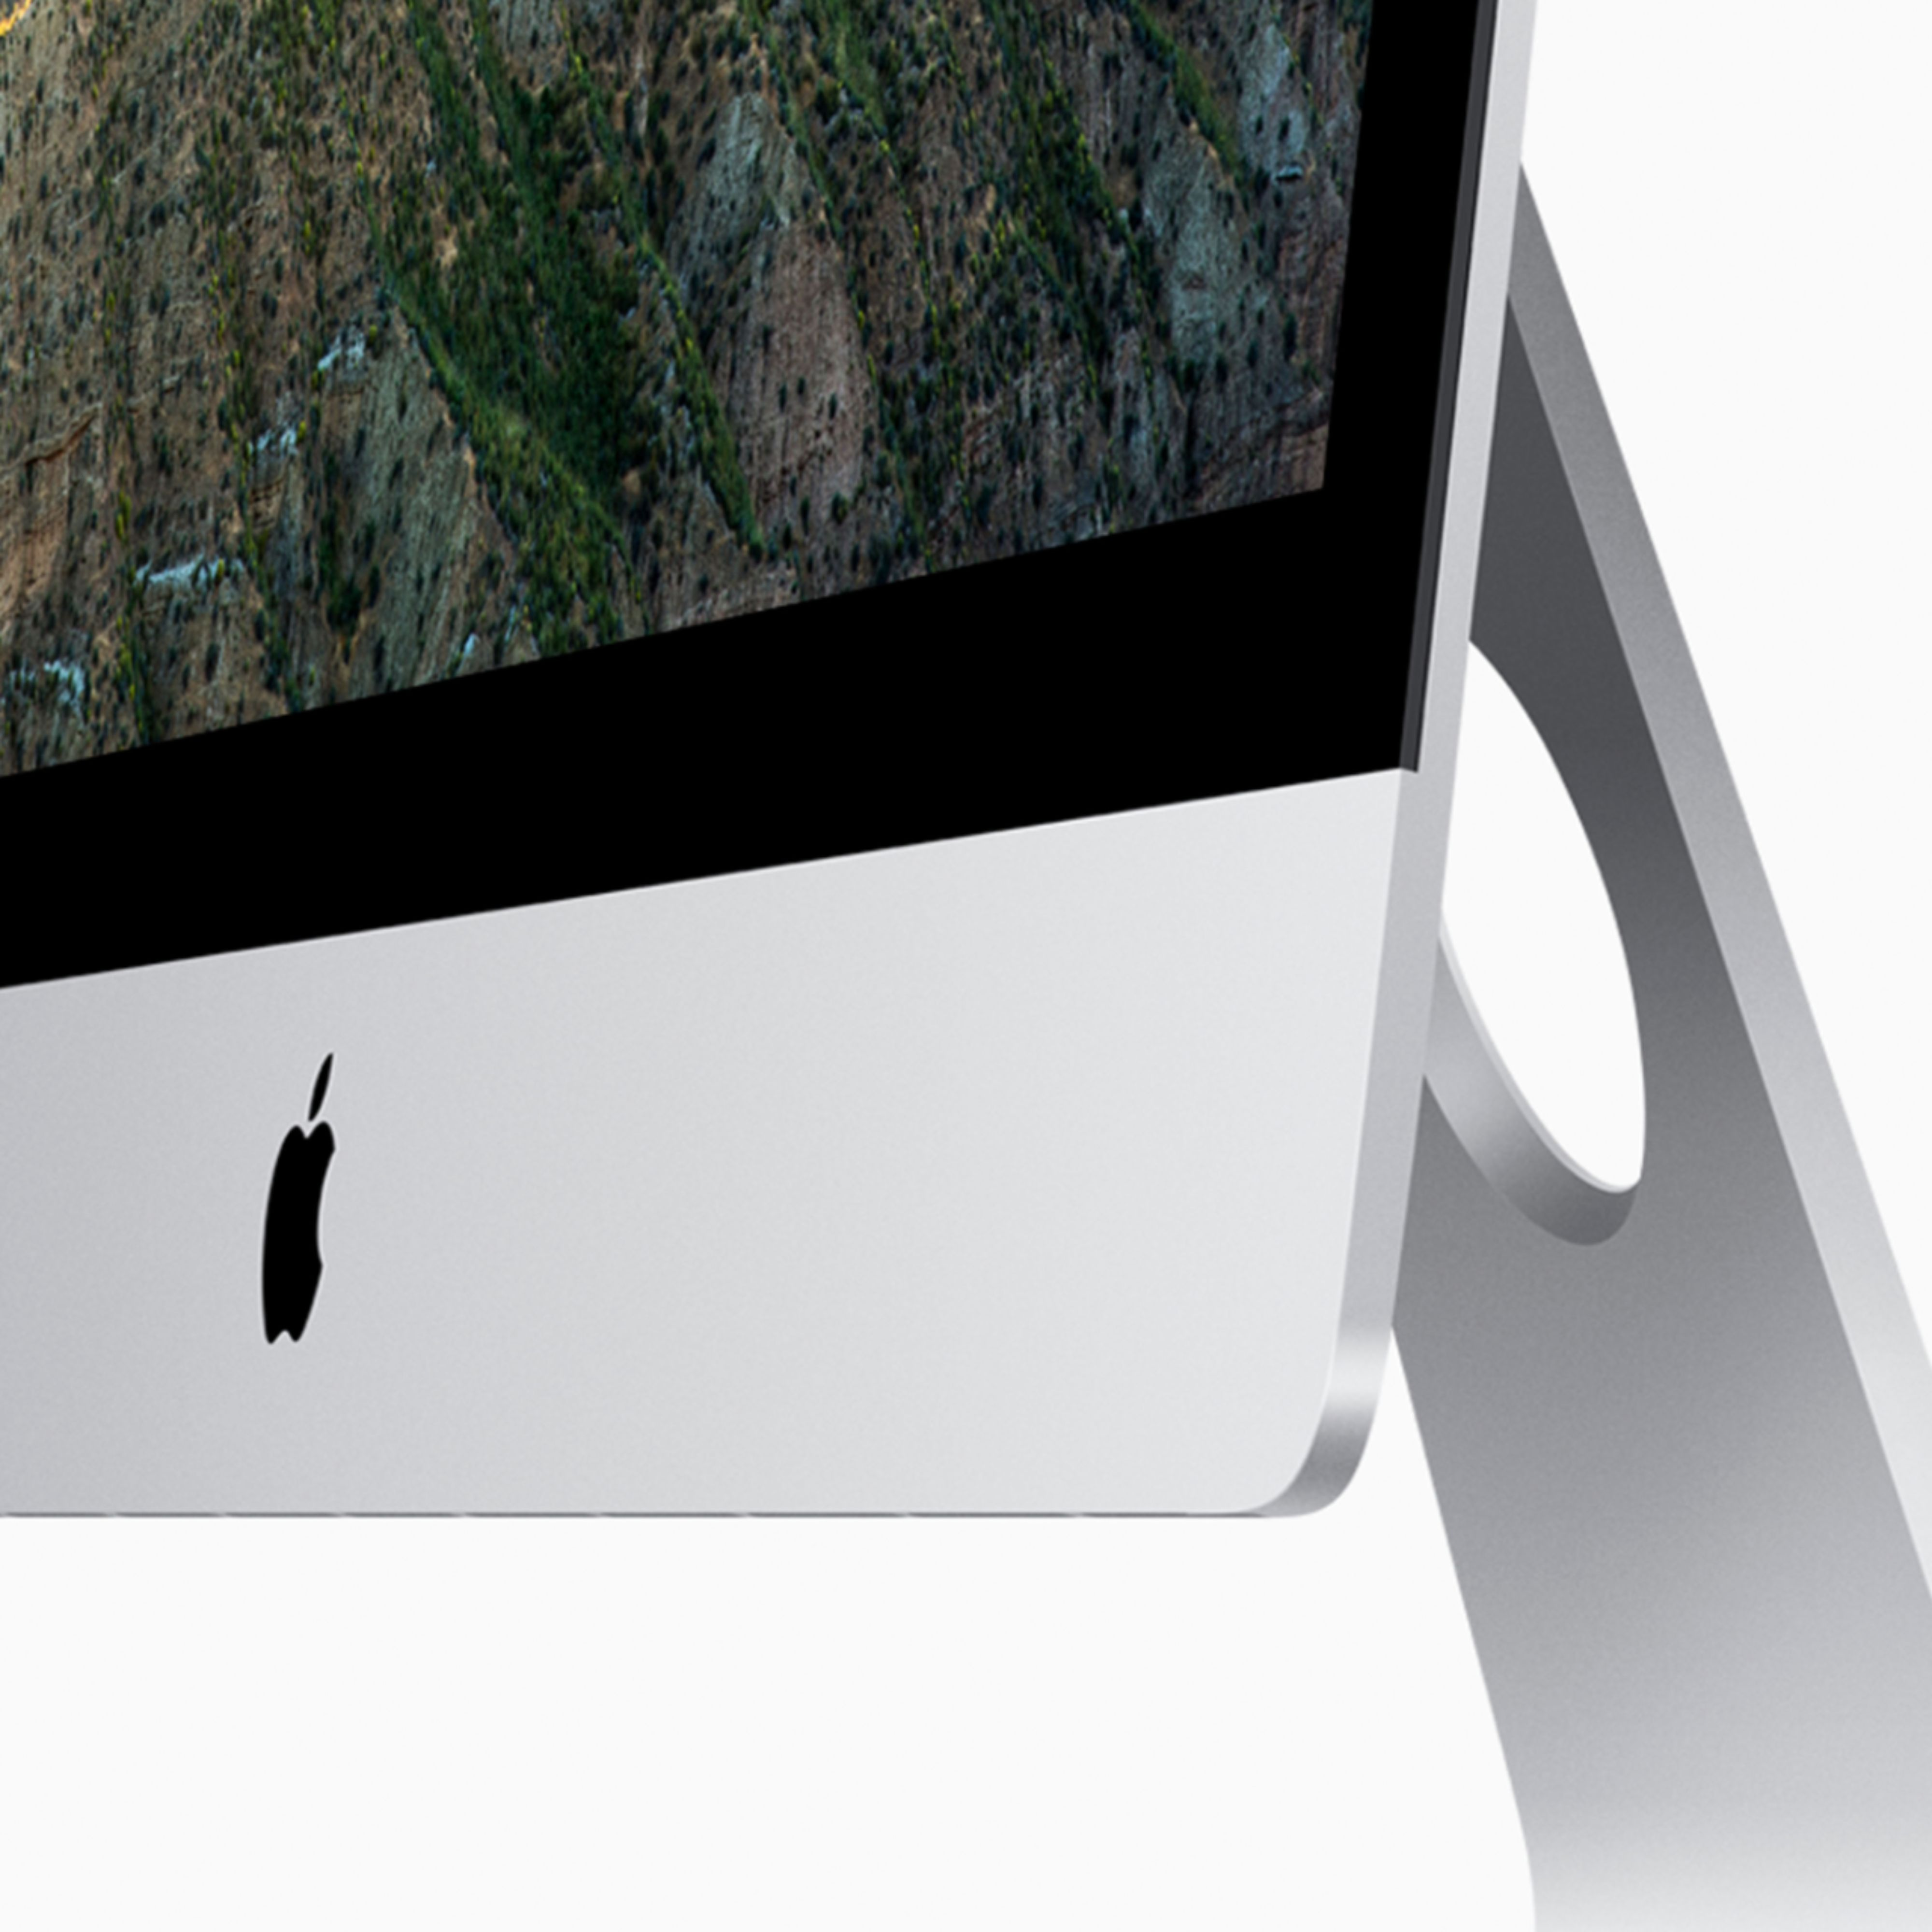 "Alt View Zoom 11. Apple - 27"" iMac® with Retina 5k display - Intel Core i5 (3.1GHz) - 8GB Memory - 1TB Fusion Drive - Silver."